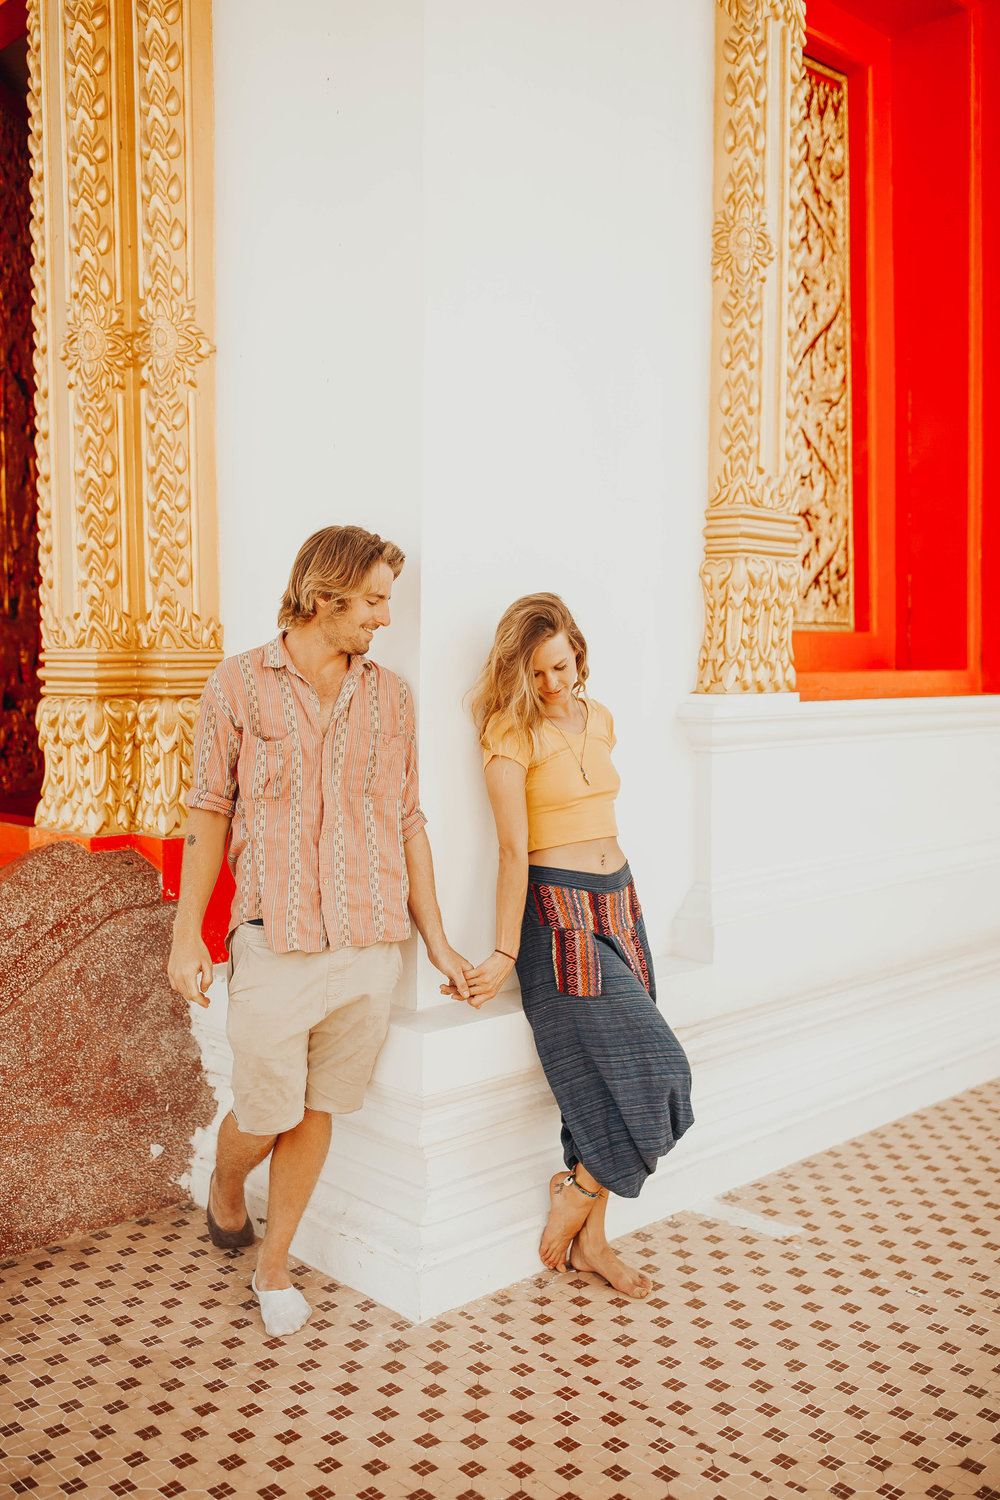 Julie and Will Old Town Phuket Couples Session 42.jpg